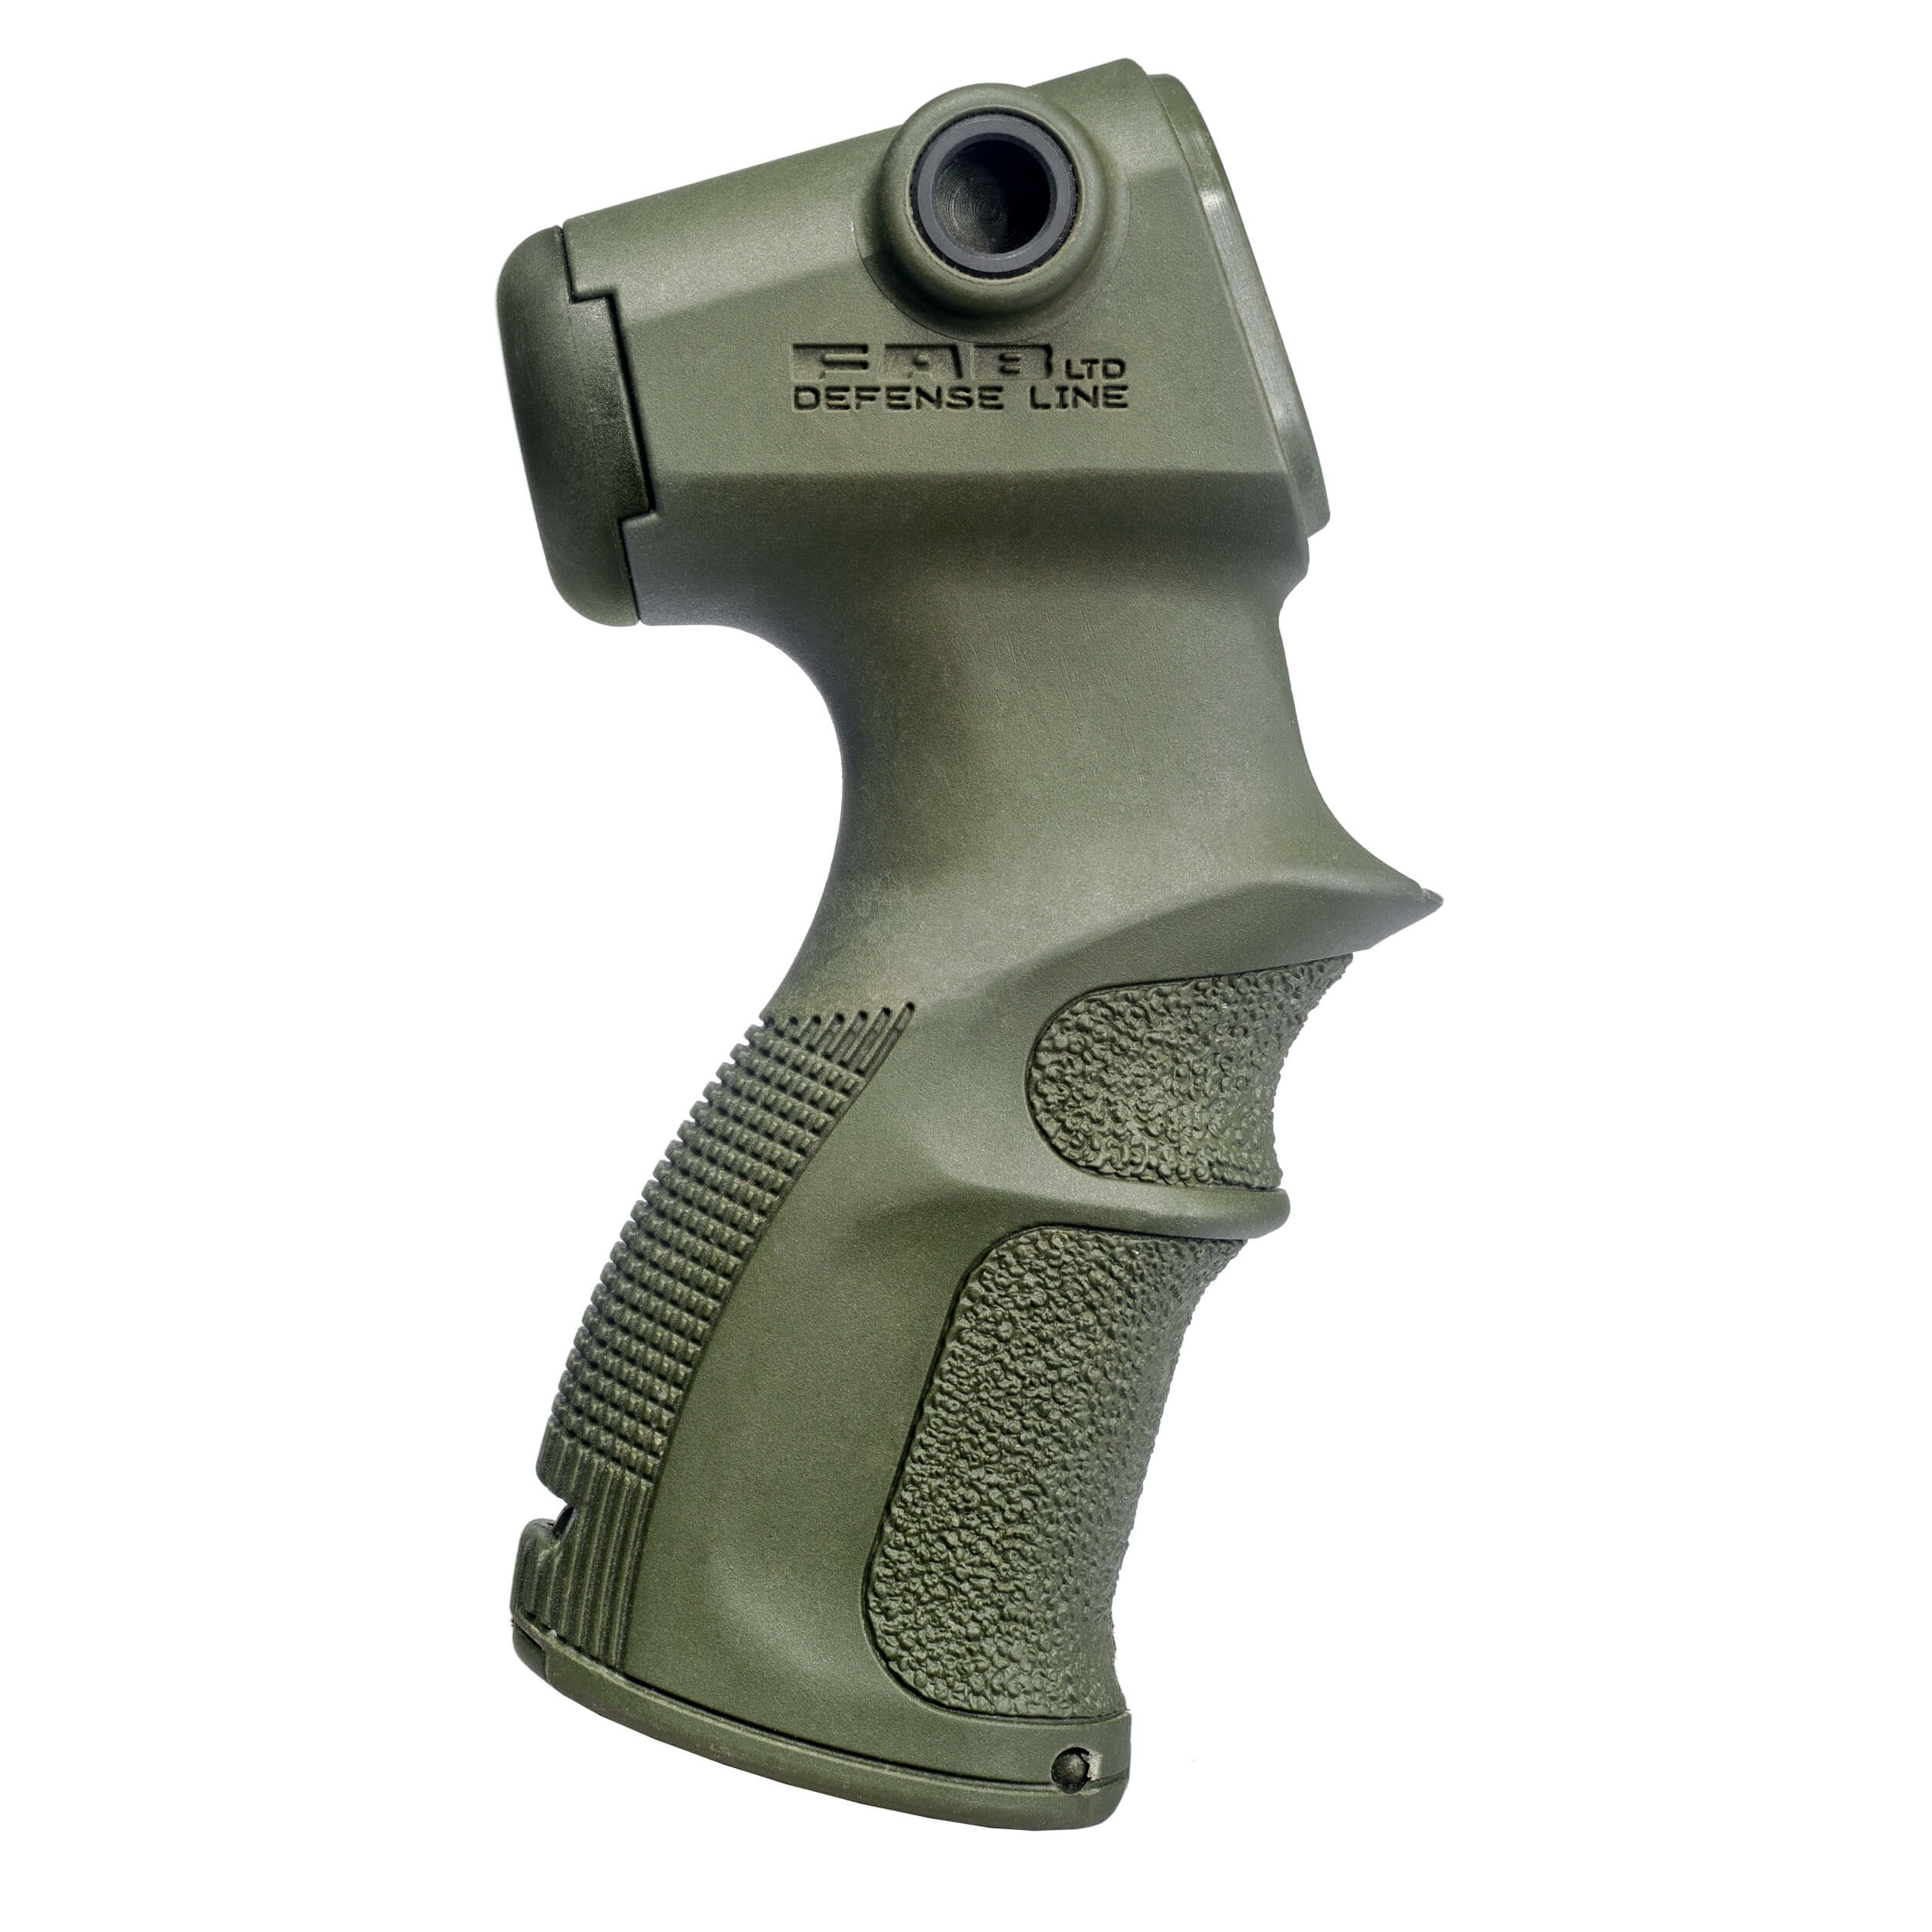 AGR-870 Pistol Grip for Remington 870